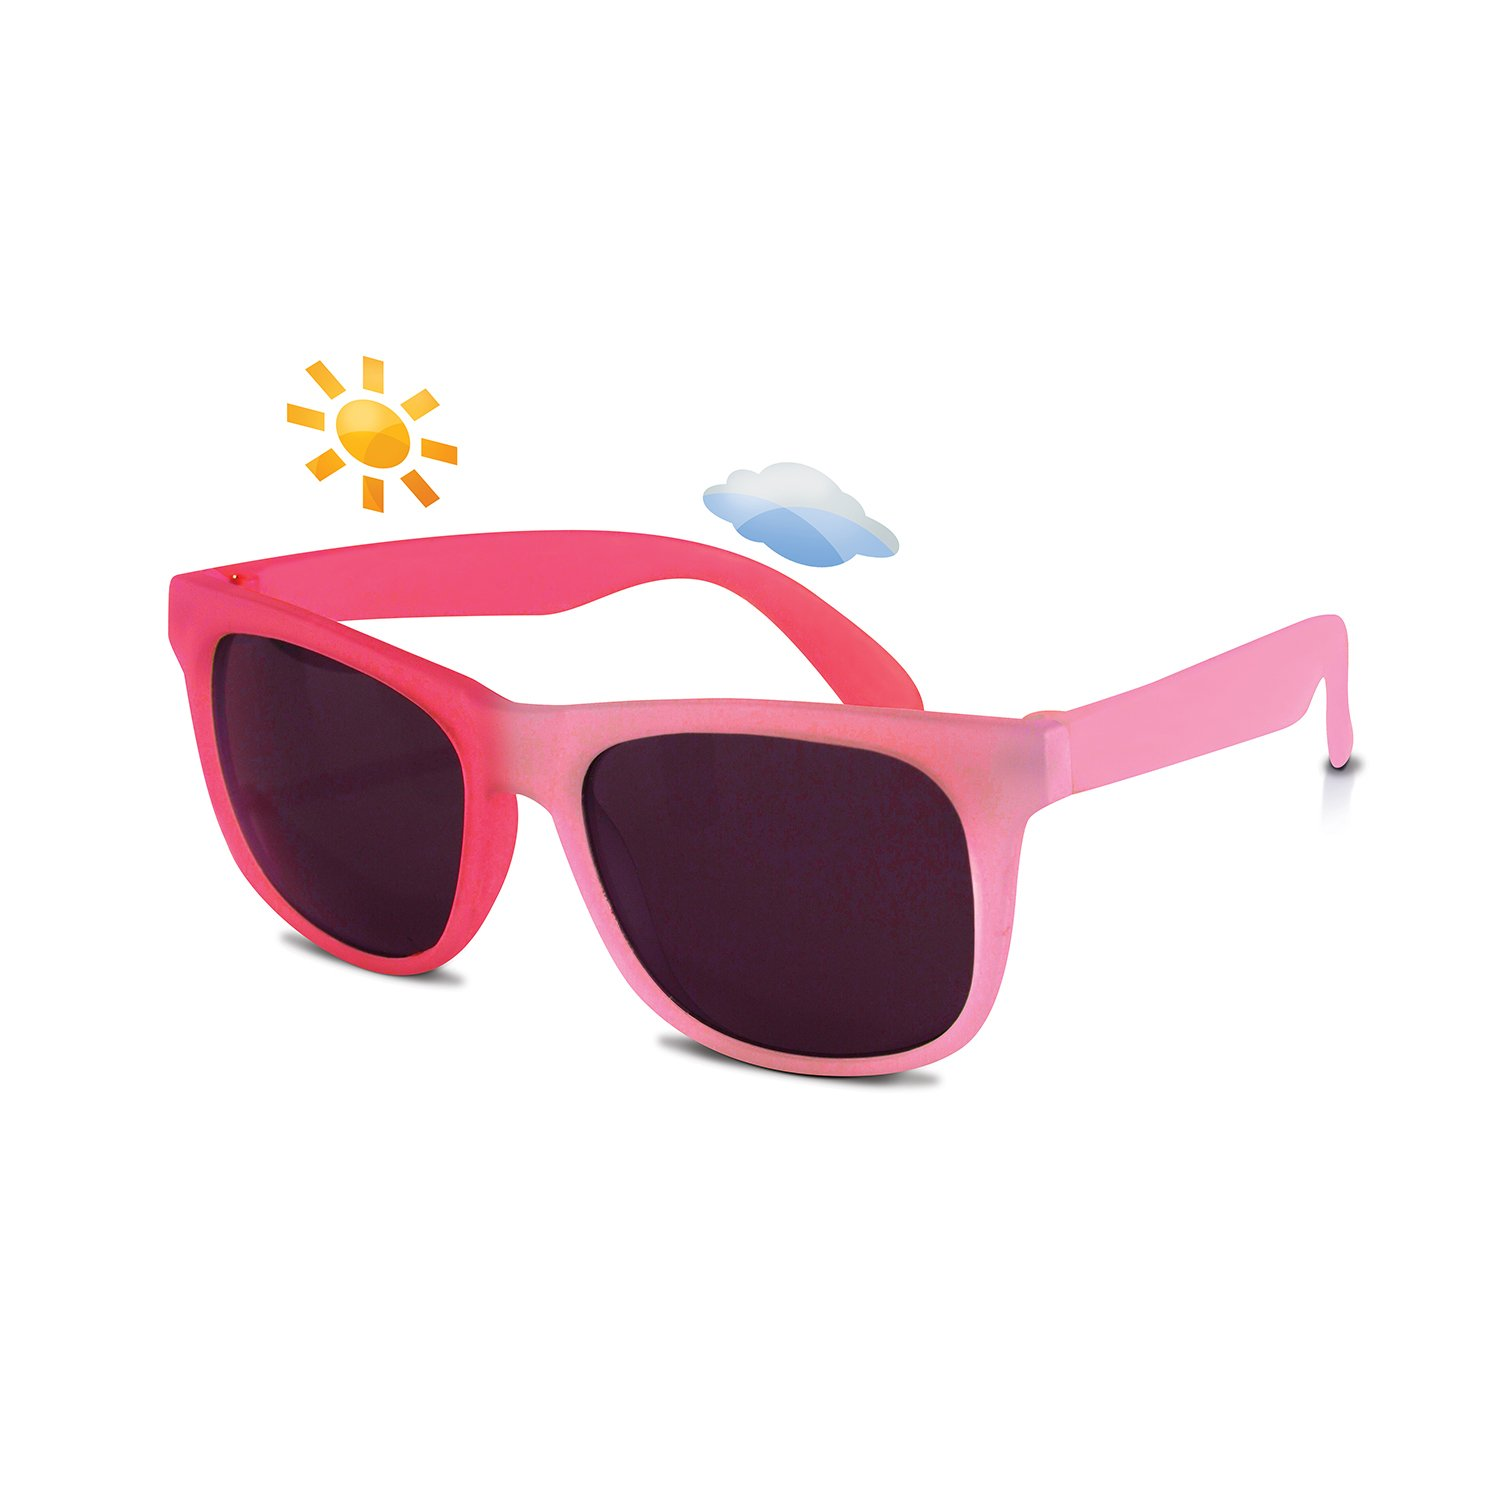 Real Shades Light Pink/Pink Switch Sunglasses for Toddlers